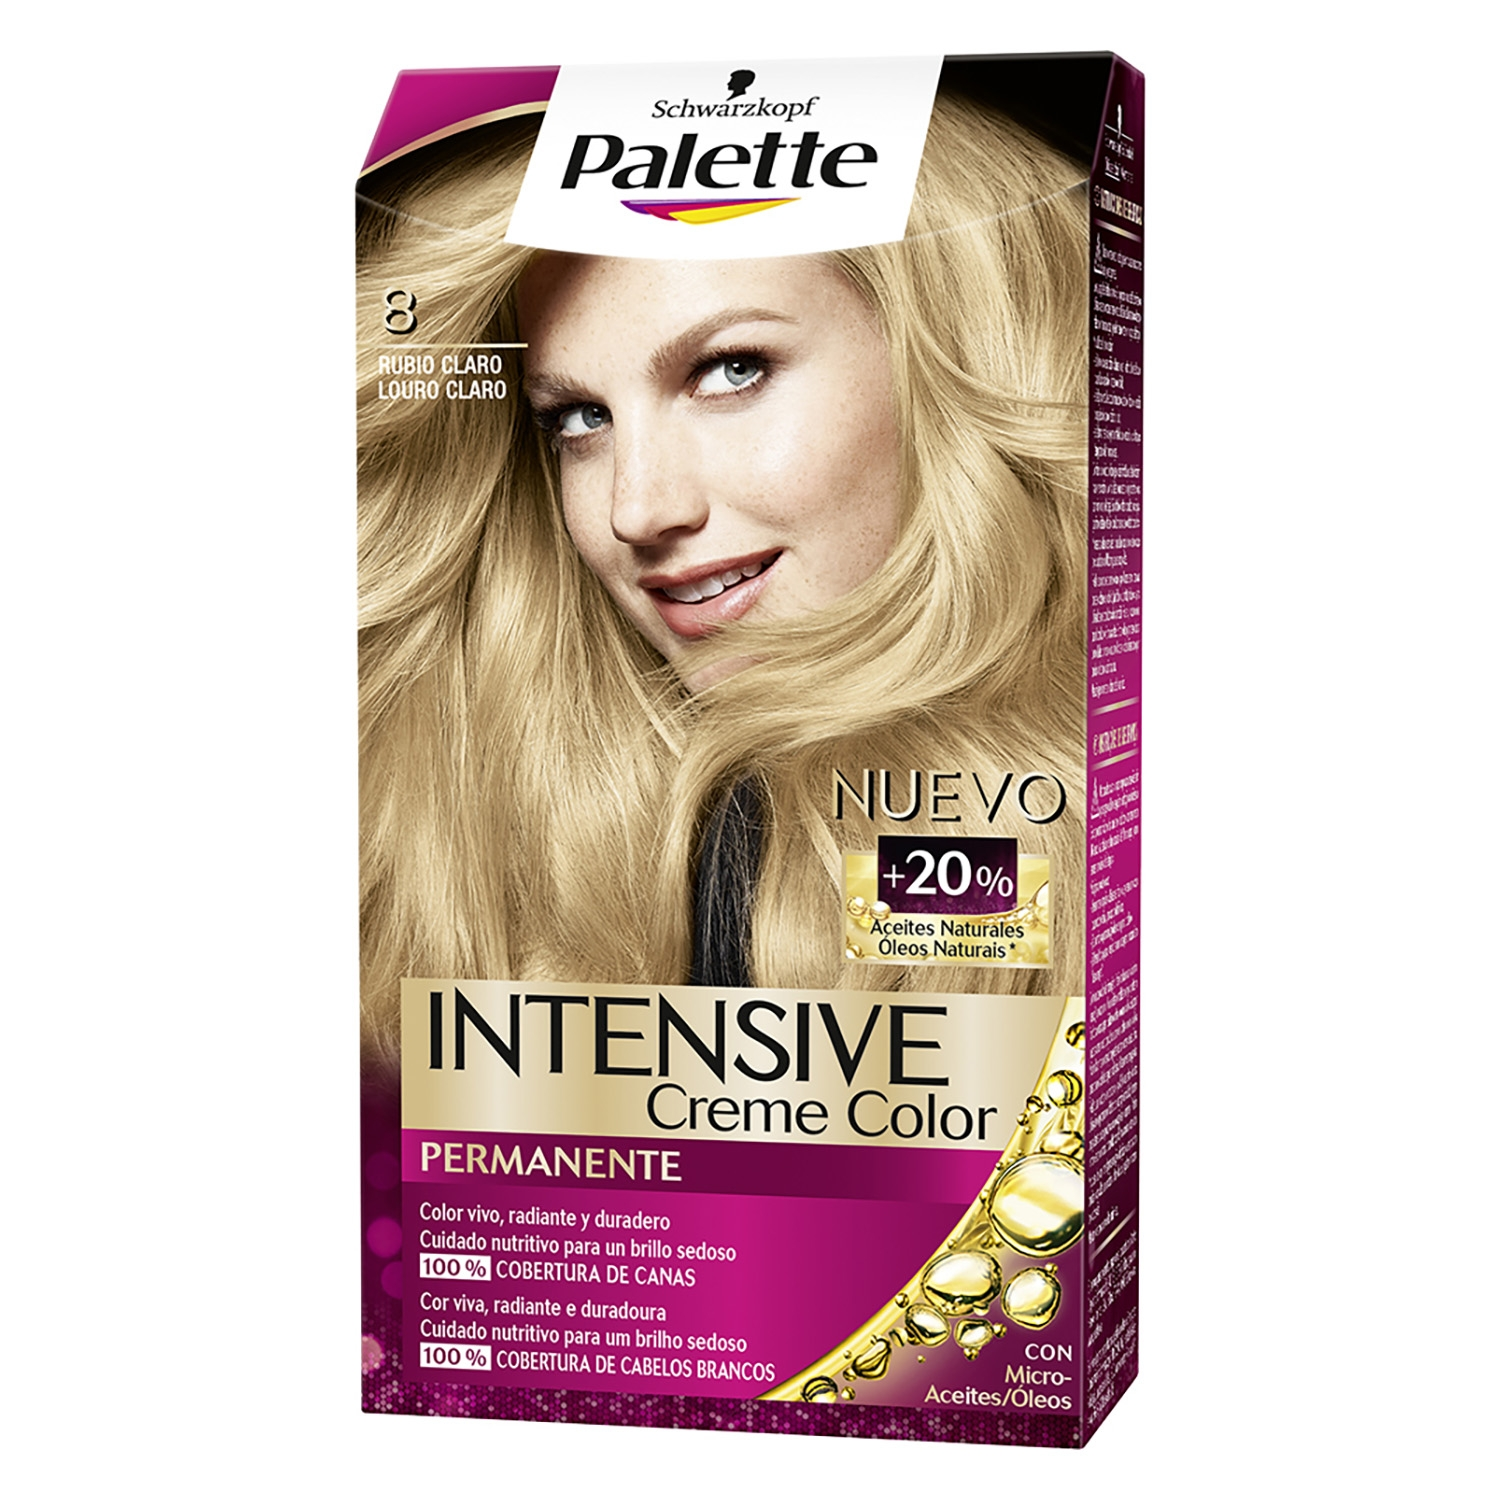 Tinte intense color cream - 8 rubio claro